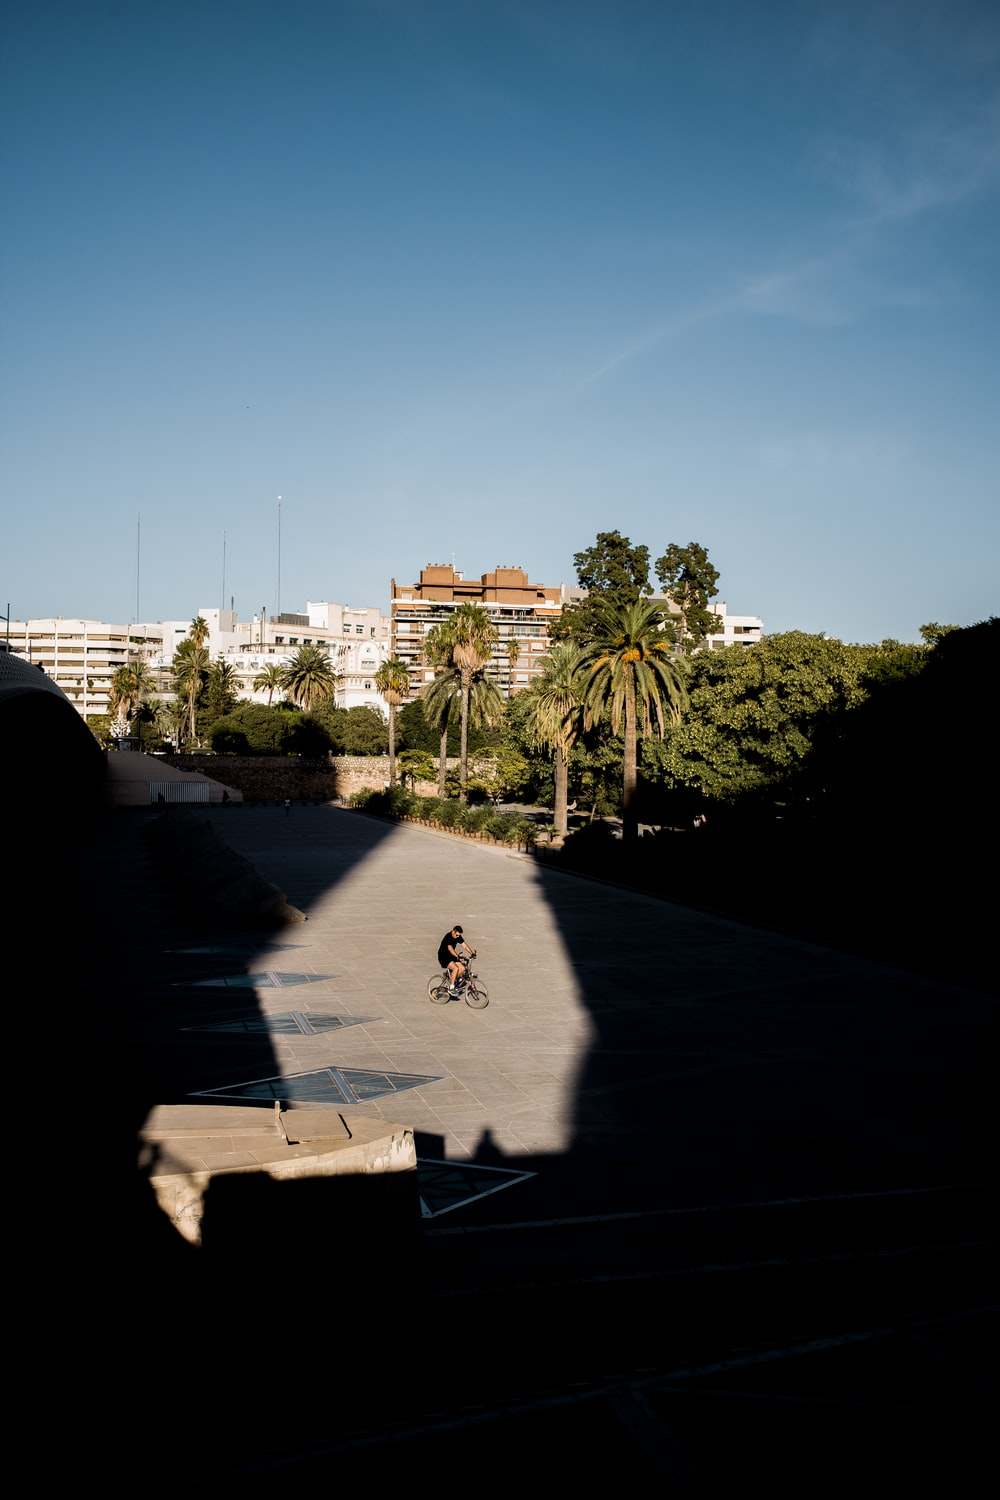 man riding on bicycle under clear blue sky